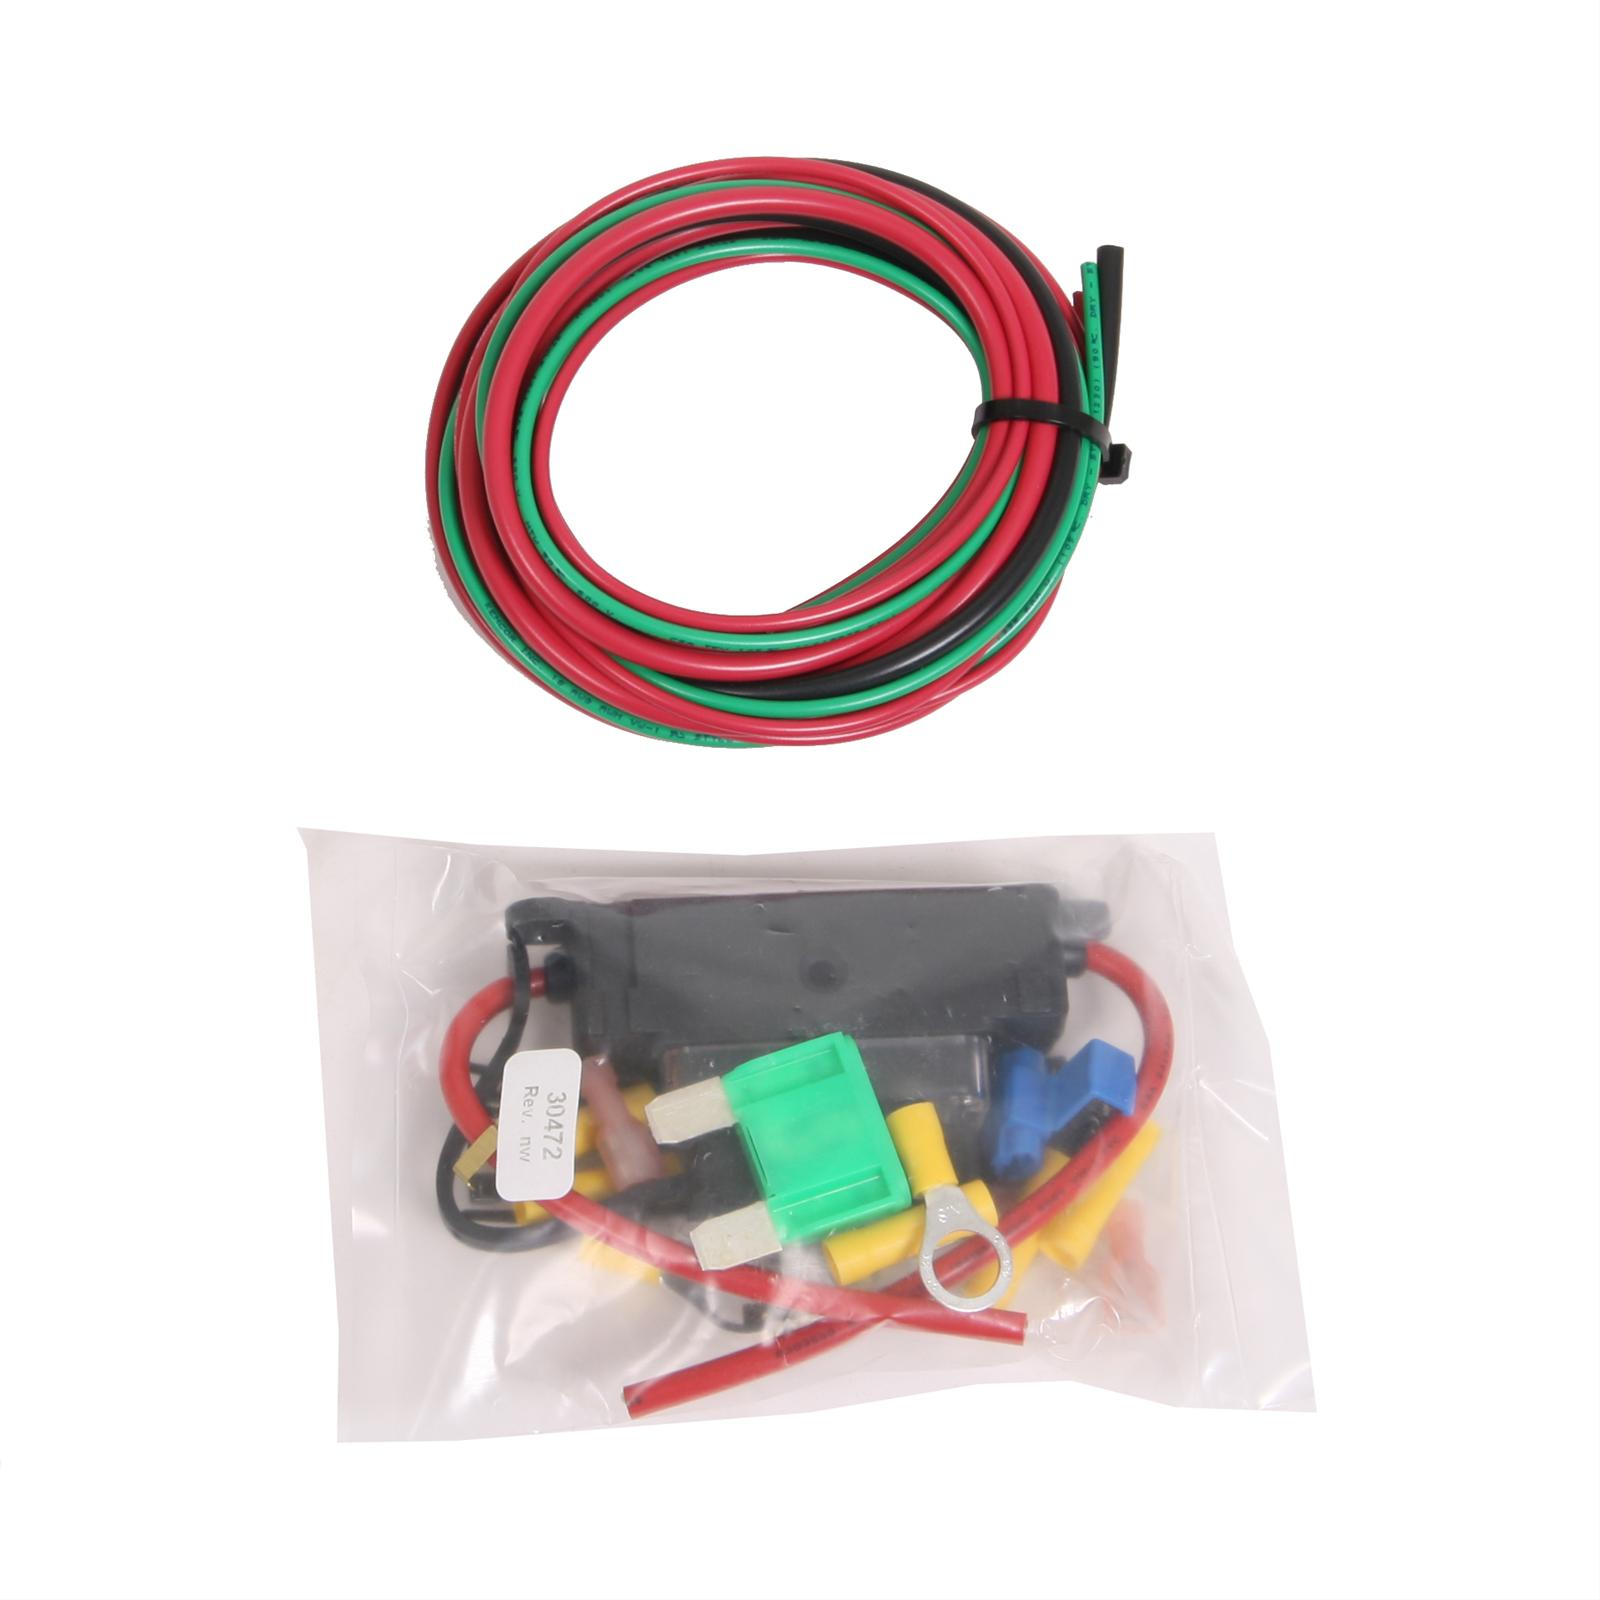 Flex Lite Fan Wiring Largest Diagram Database Flexalite A Replacement Electric Kits 31281 Free Shipping On Orders Over 99 At Install Controller